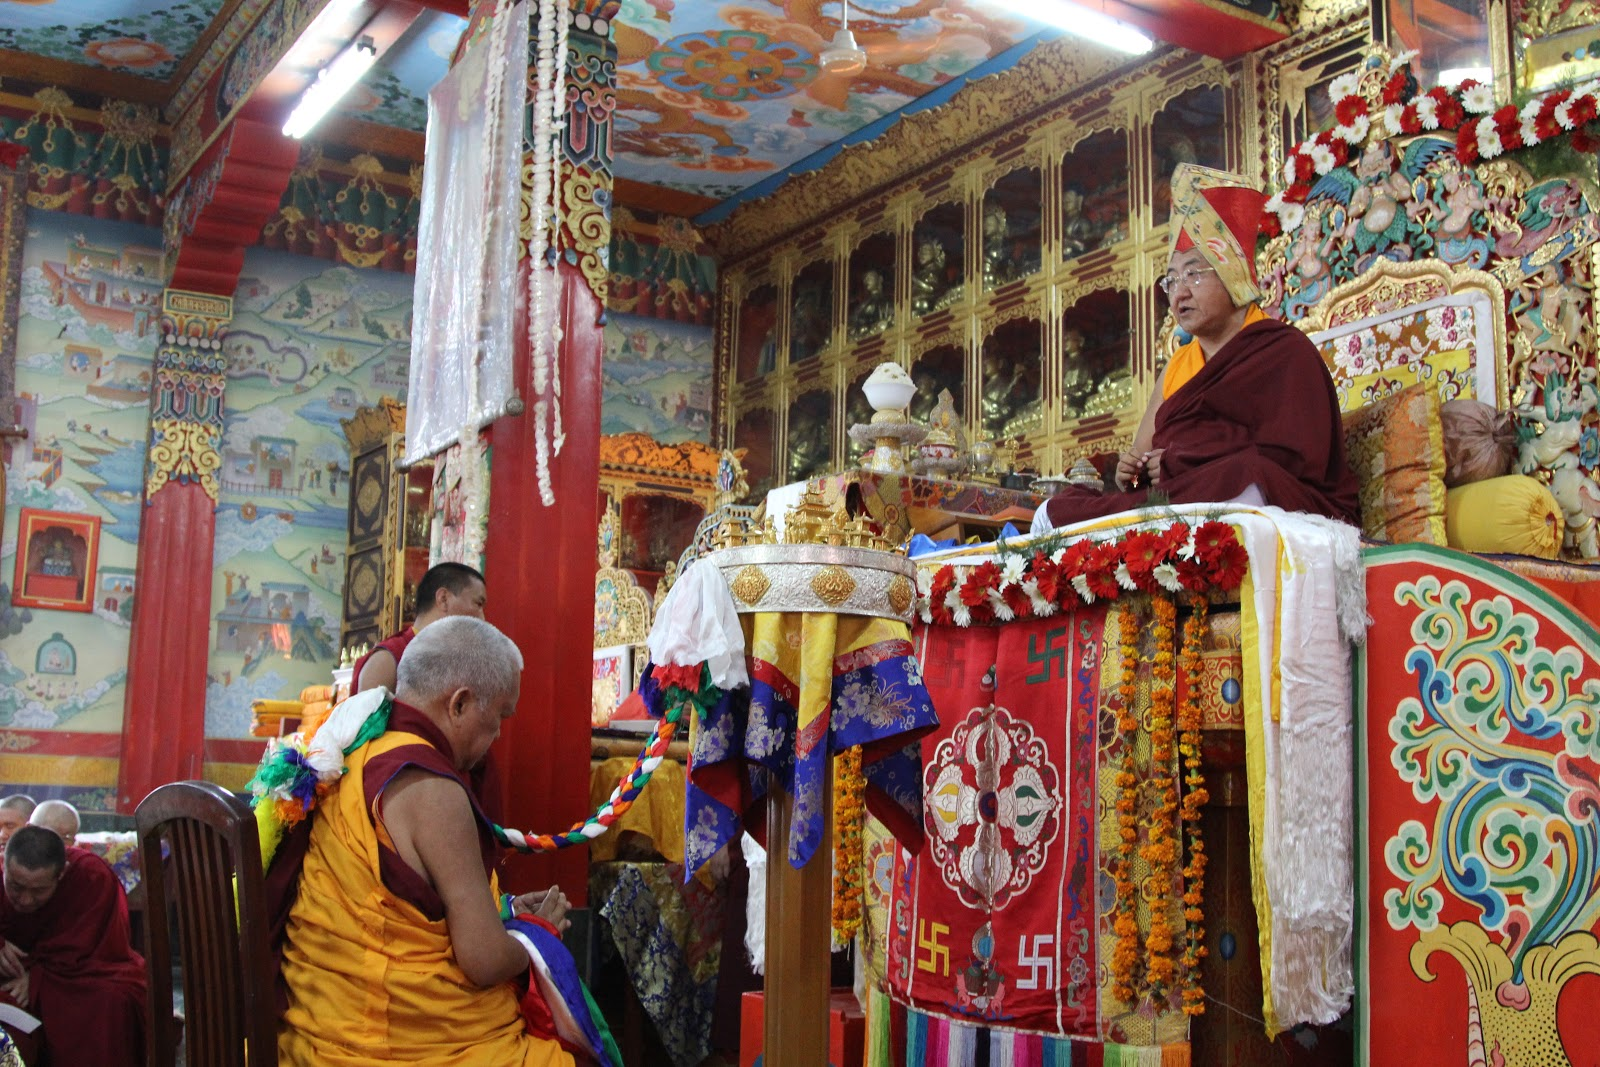 Offering long life pujas for Gurus